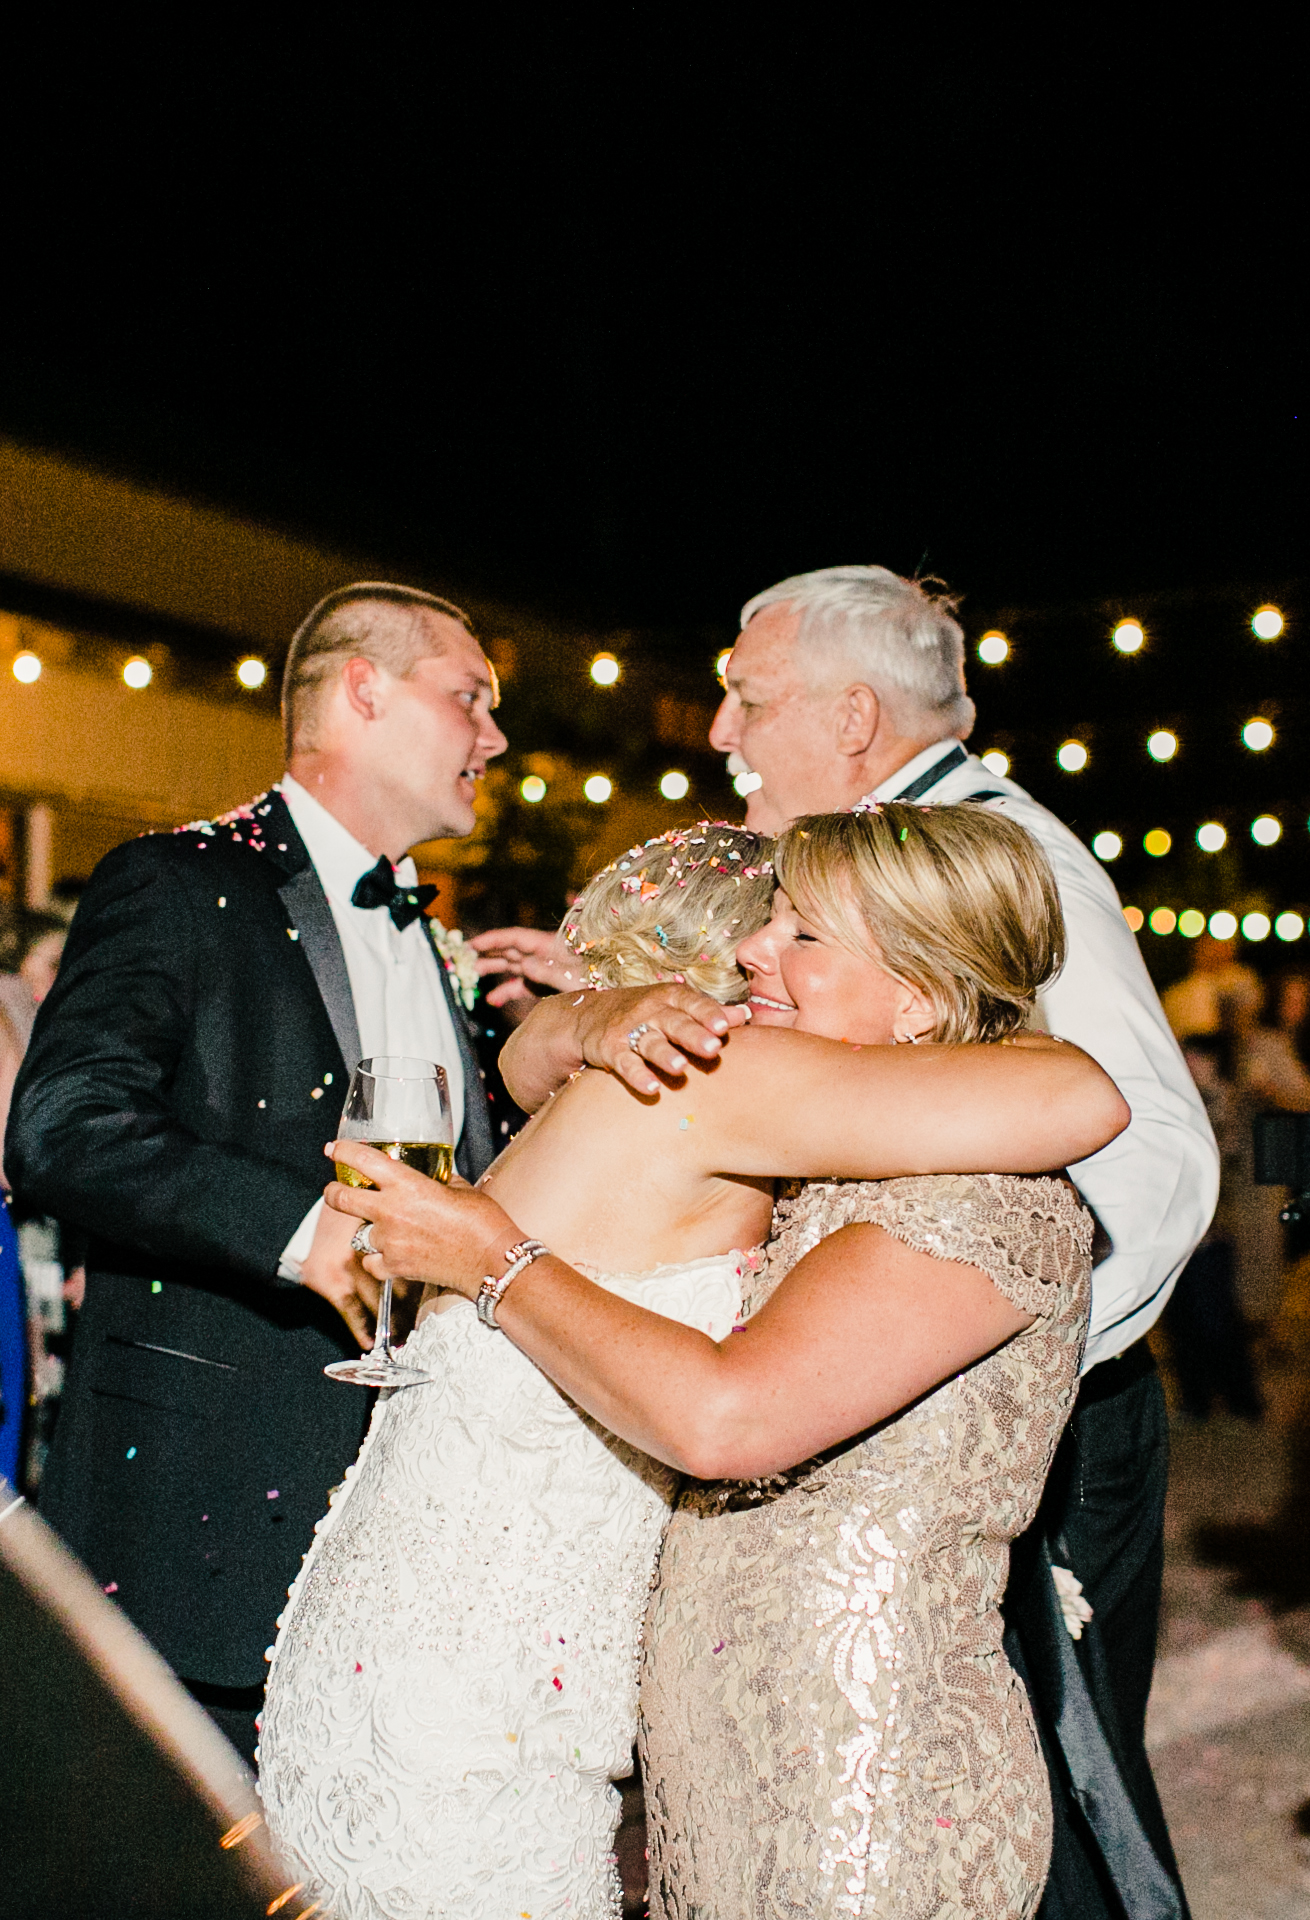 turnerwedding-742.jpg